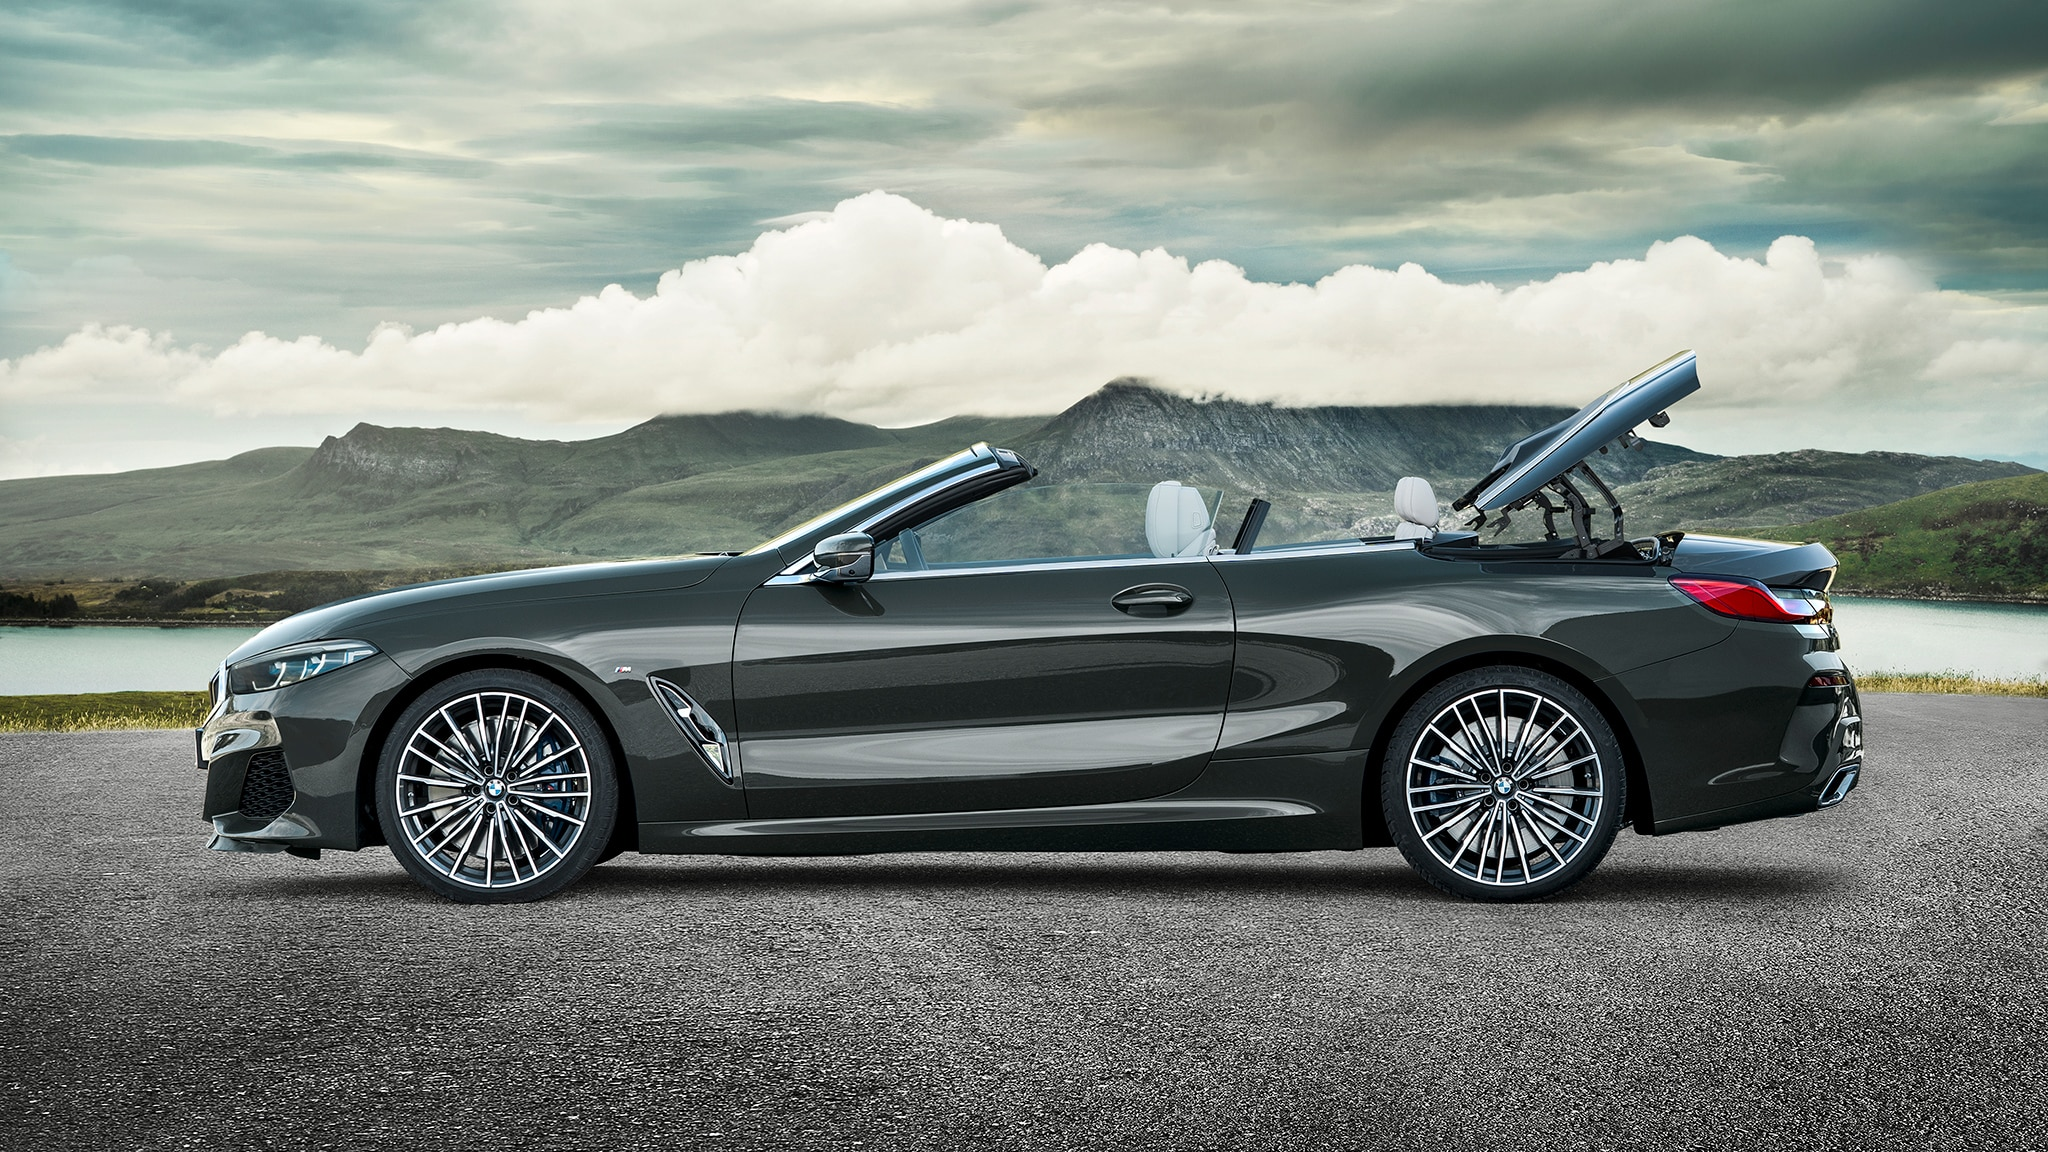 2019 BMW M850i Convertible Top Going Down 4